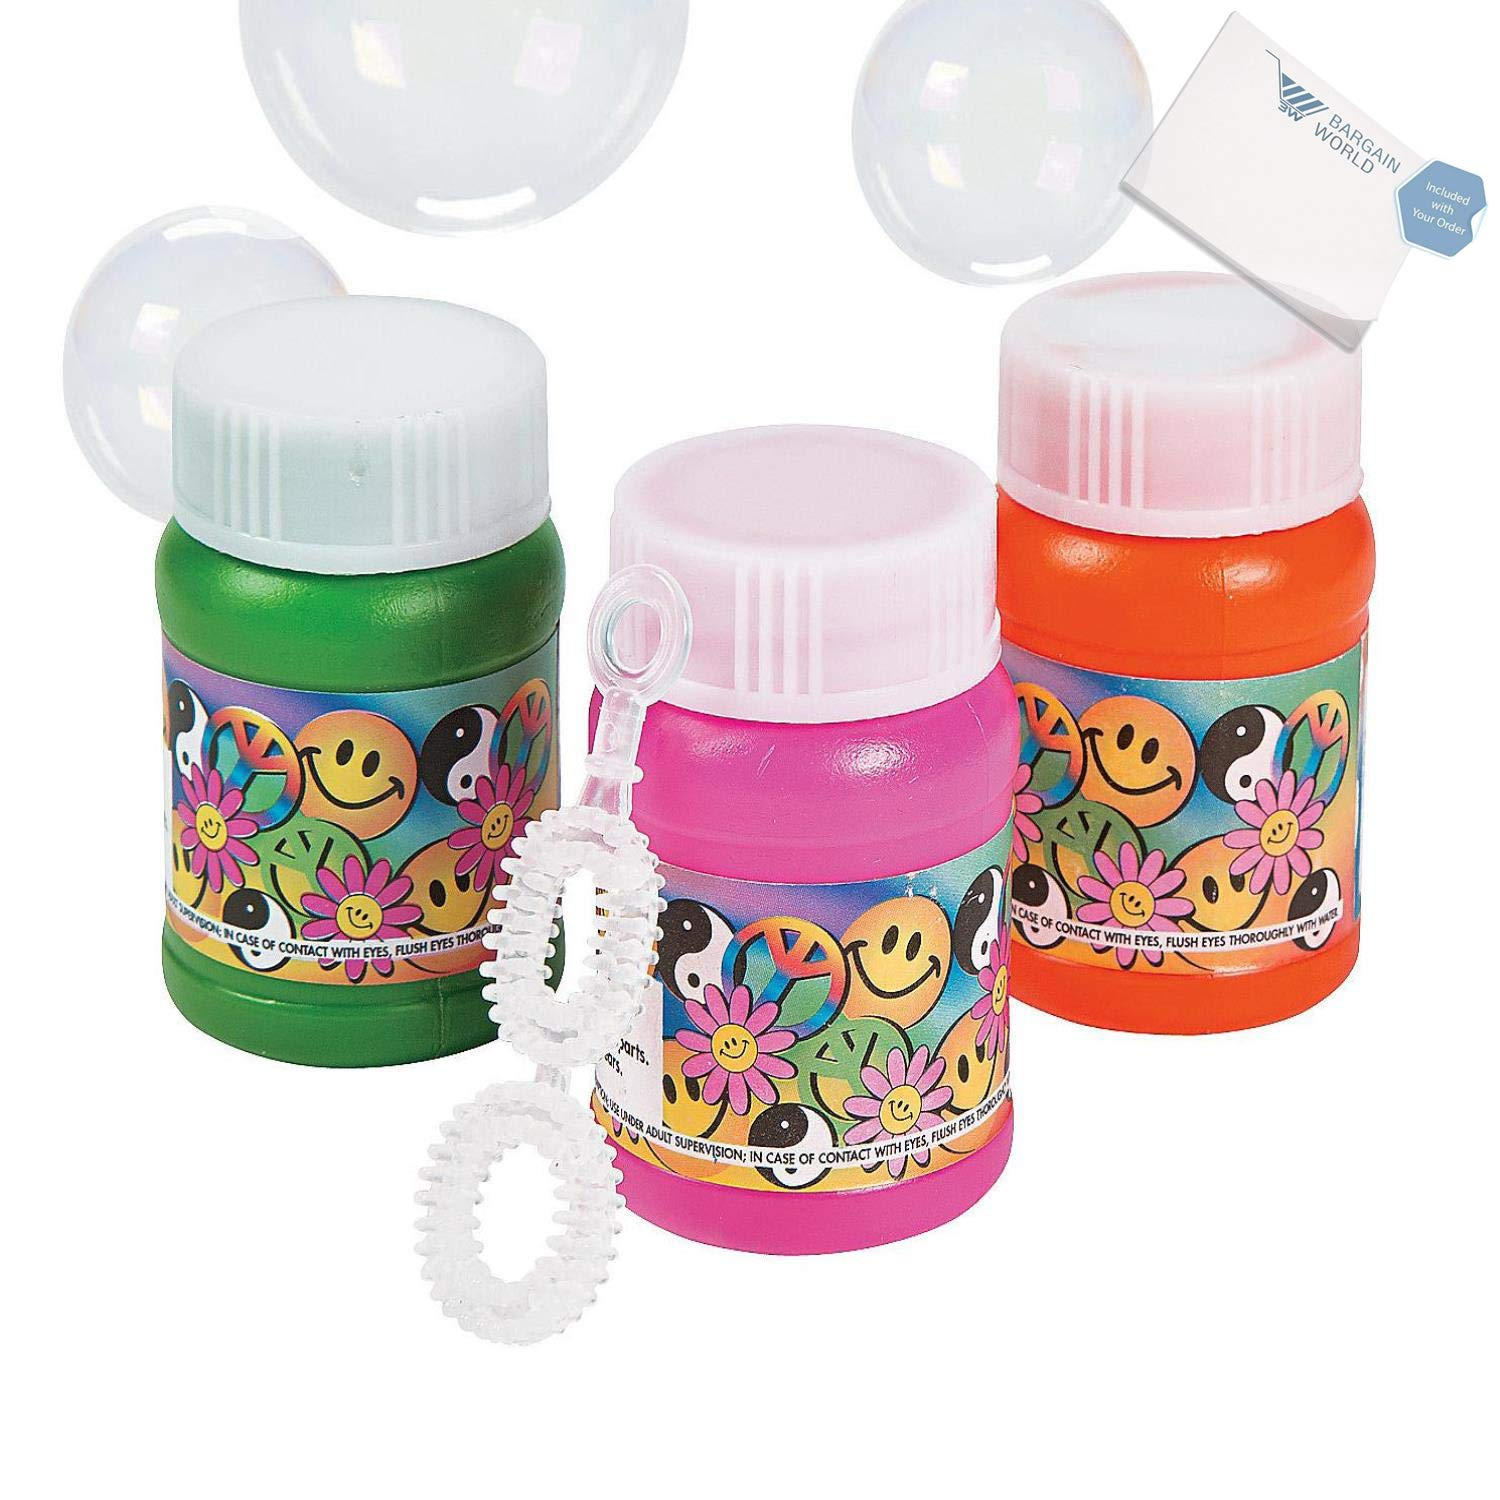 Bargain World Plastic Mini '60s Bubble Bottles (With Sticky Notes)